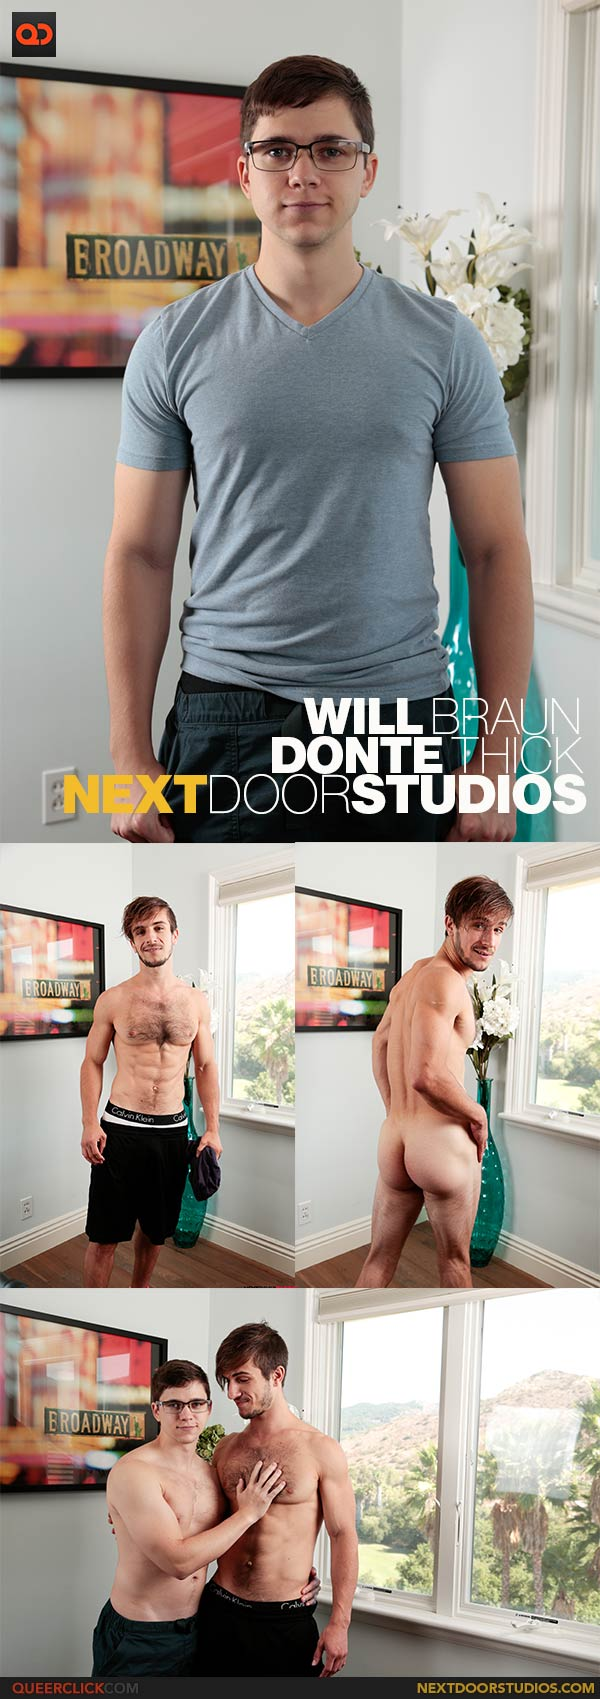 Next Door Taboo: Donte Thick and Will Braun